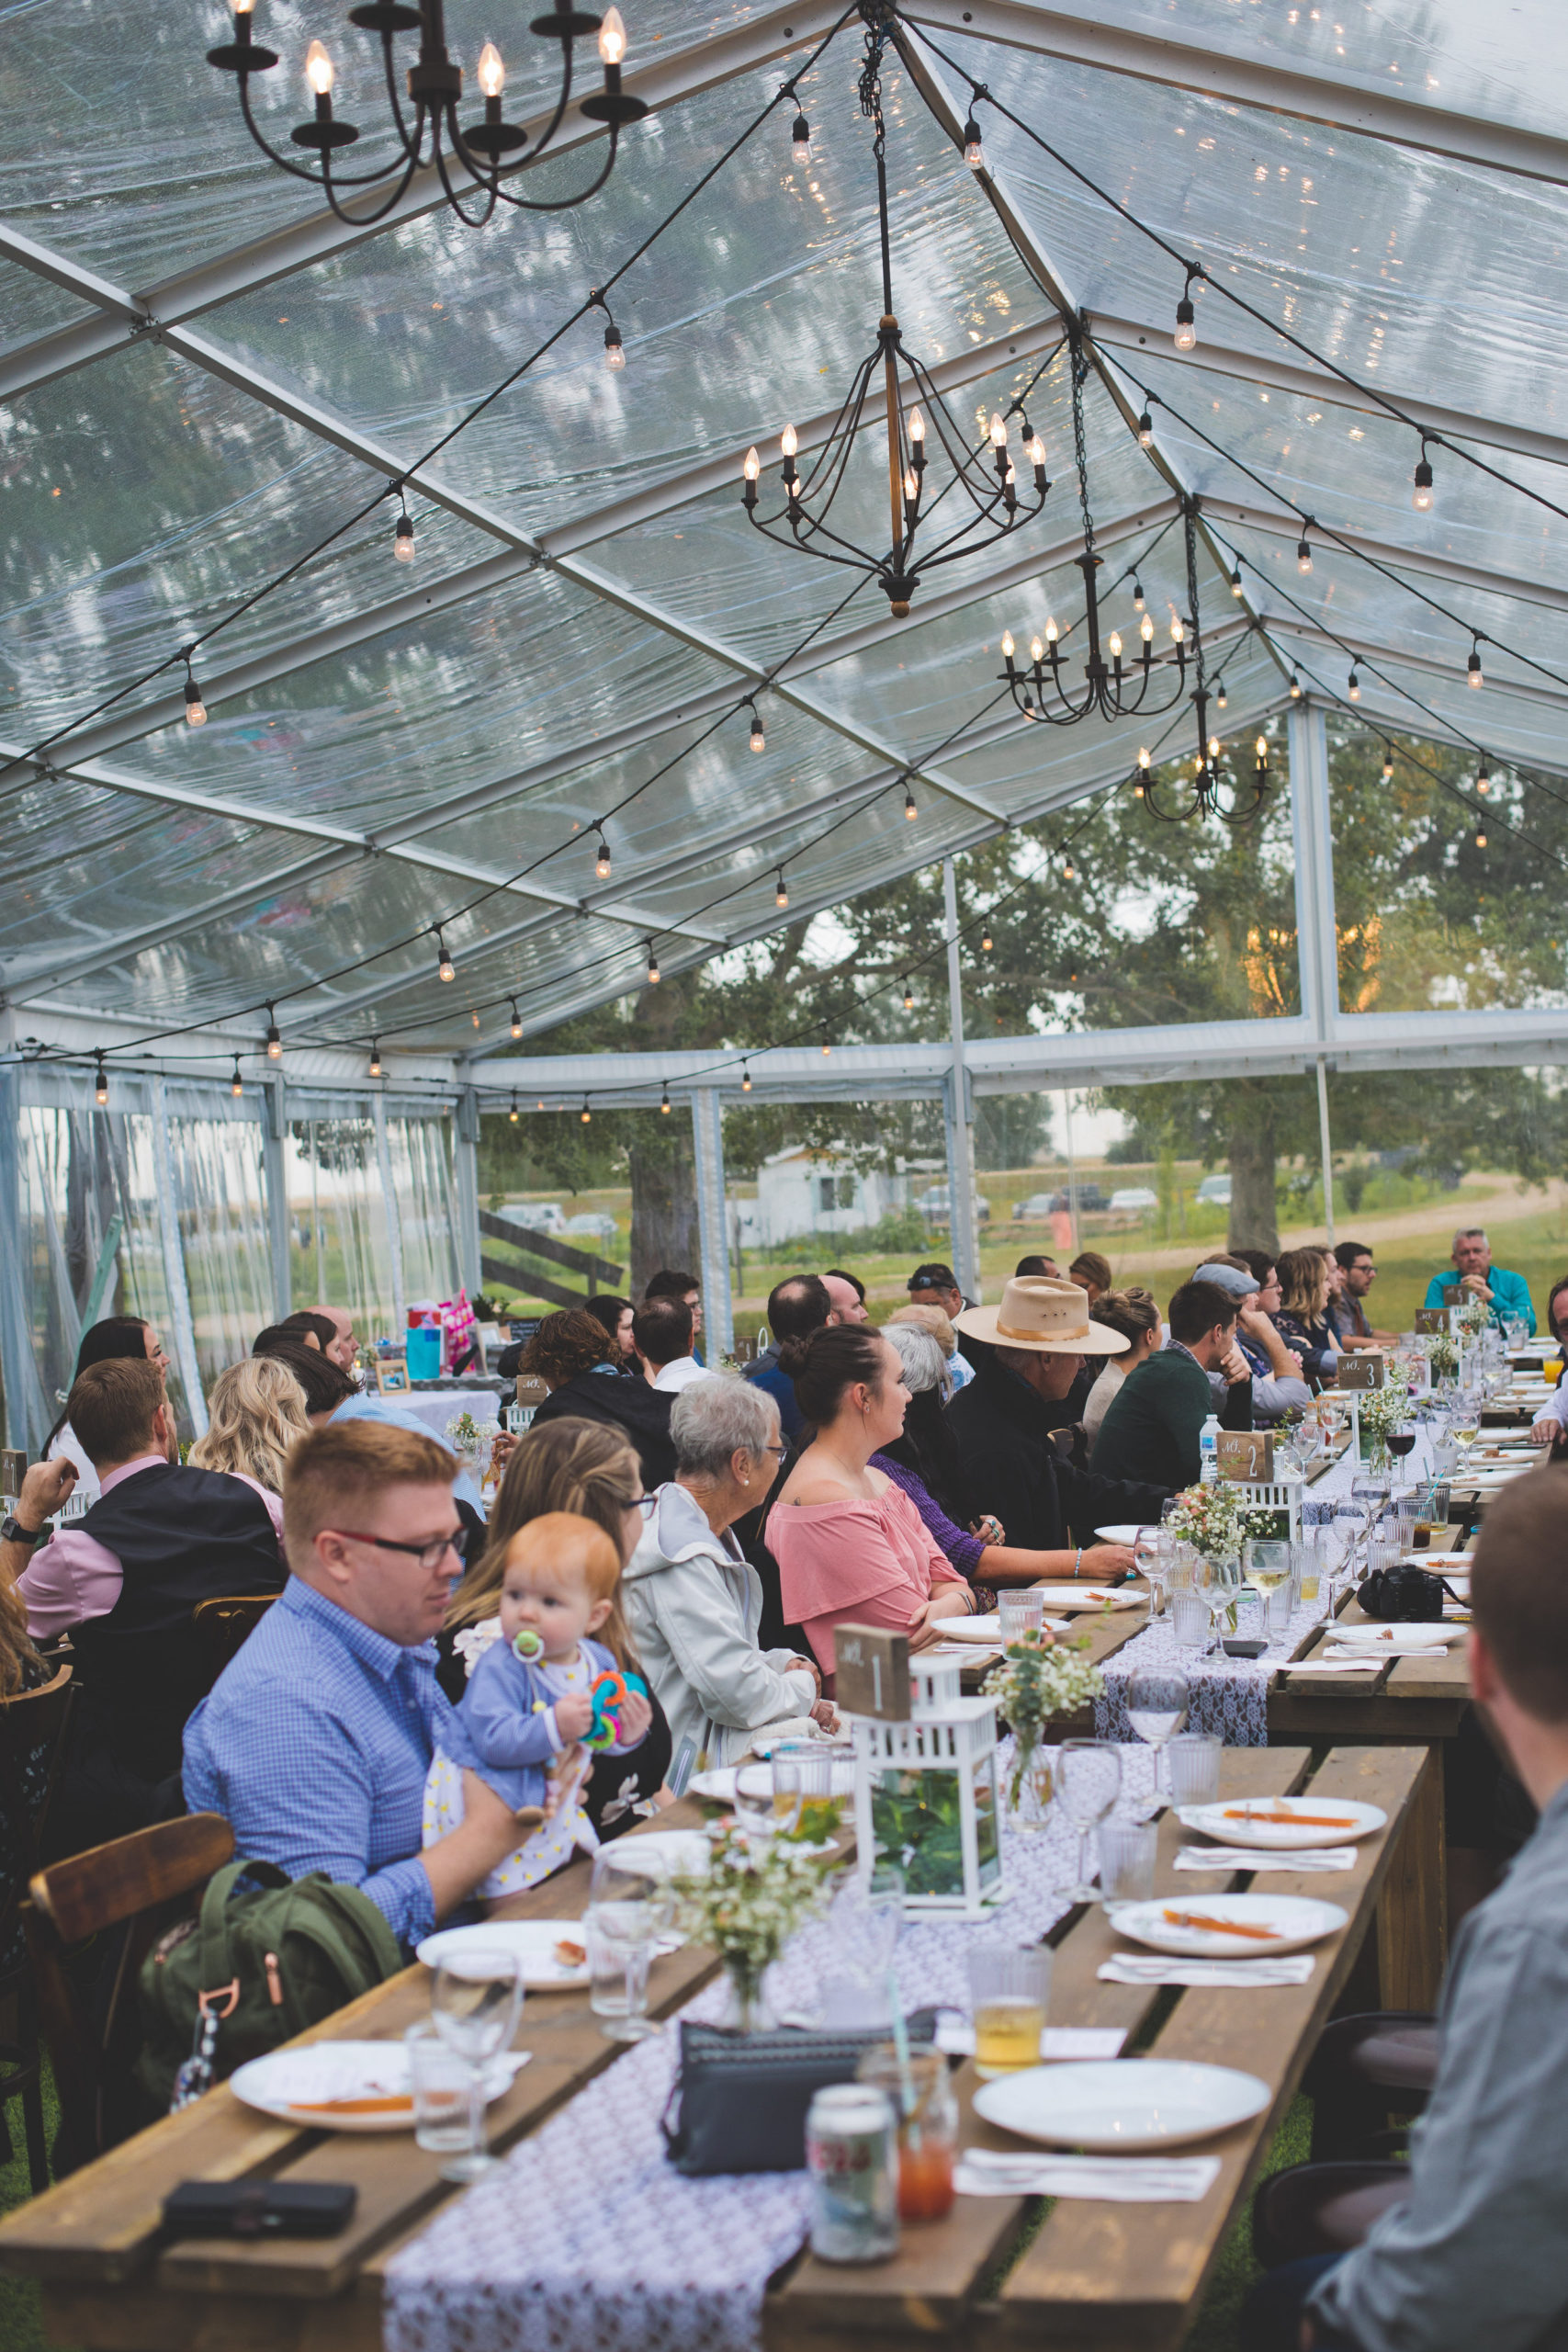 Clear wedding tent with black chandeliers and globe lighting. Guests sit at long wood harvest tables.